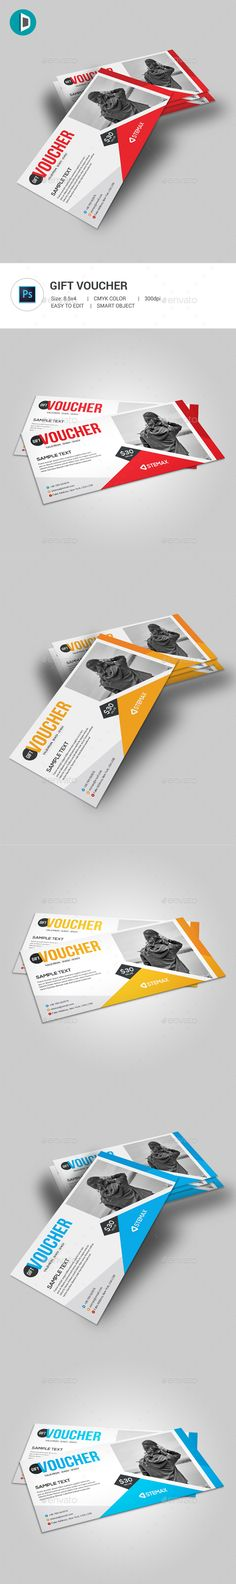 #Gift Voucher - Loyalty Cards Cards & Invites Download here: https://graphicriver.net/item/gift-voucher/19191511?ref=alena994